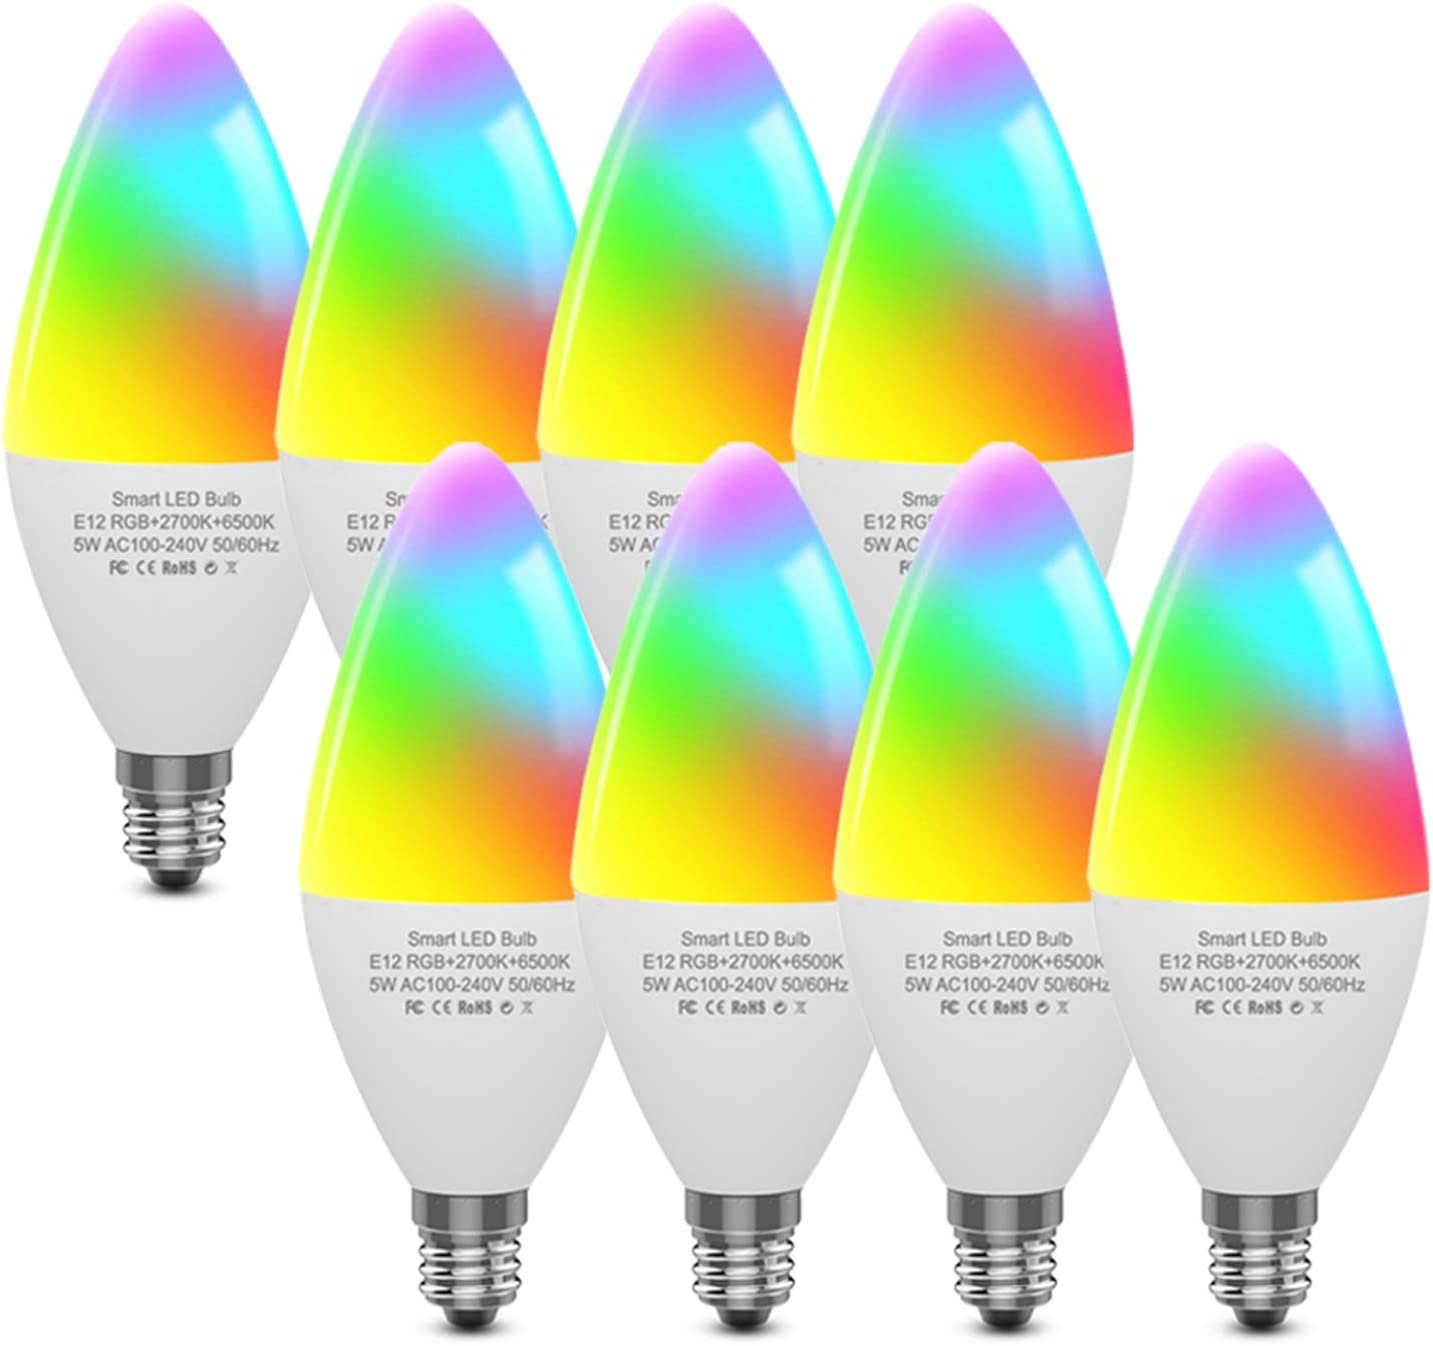 CMARS Smart Light Bulbs E12 Base, Candelabra LED Bulbs Work with Alexa Google Home IFTTT, Dimmable and RGB Color Changing Light Bulb, Tunable White Chandelier Light Bulbs 320 lm 35w Equivalent 8 Pack